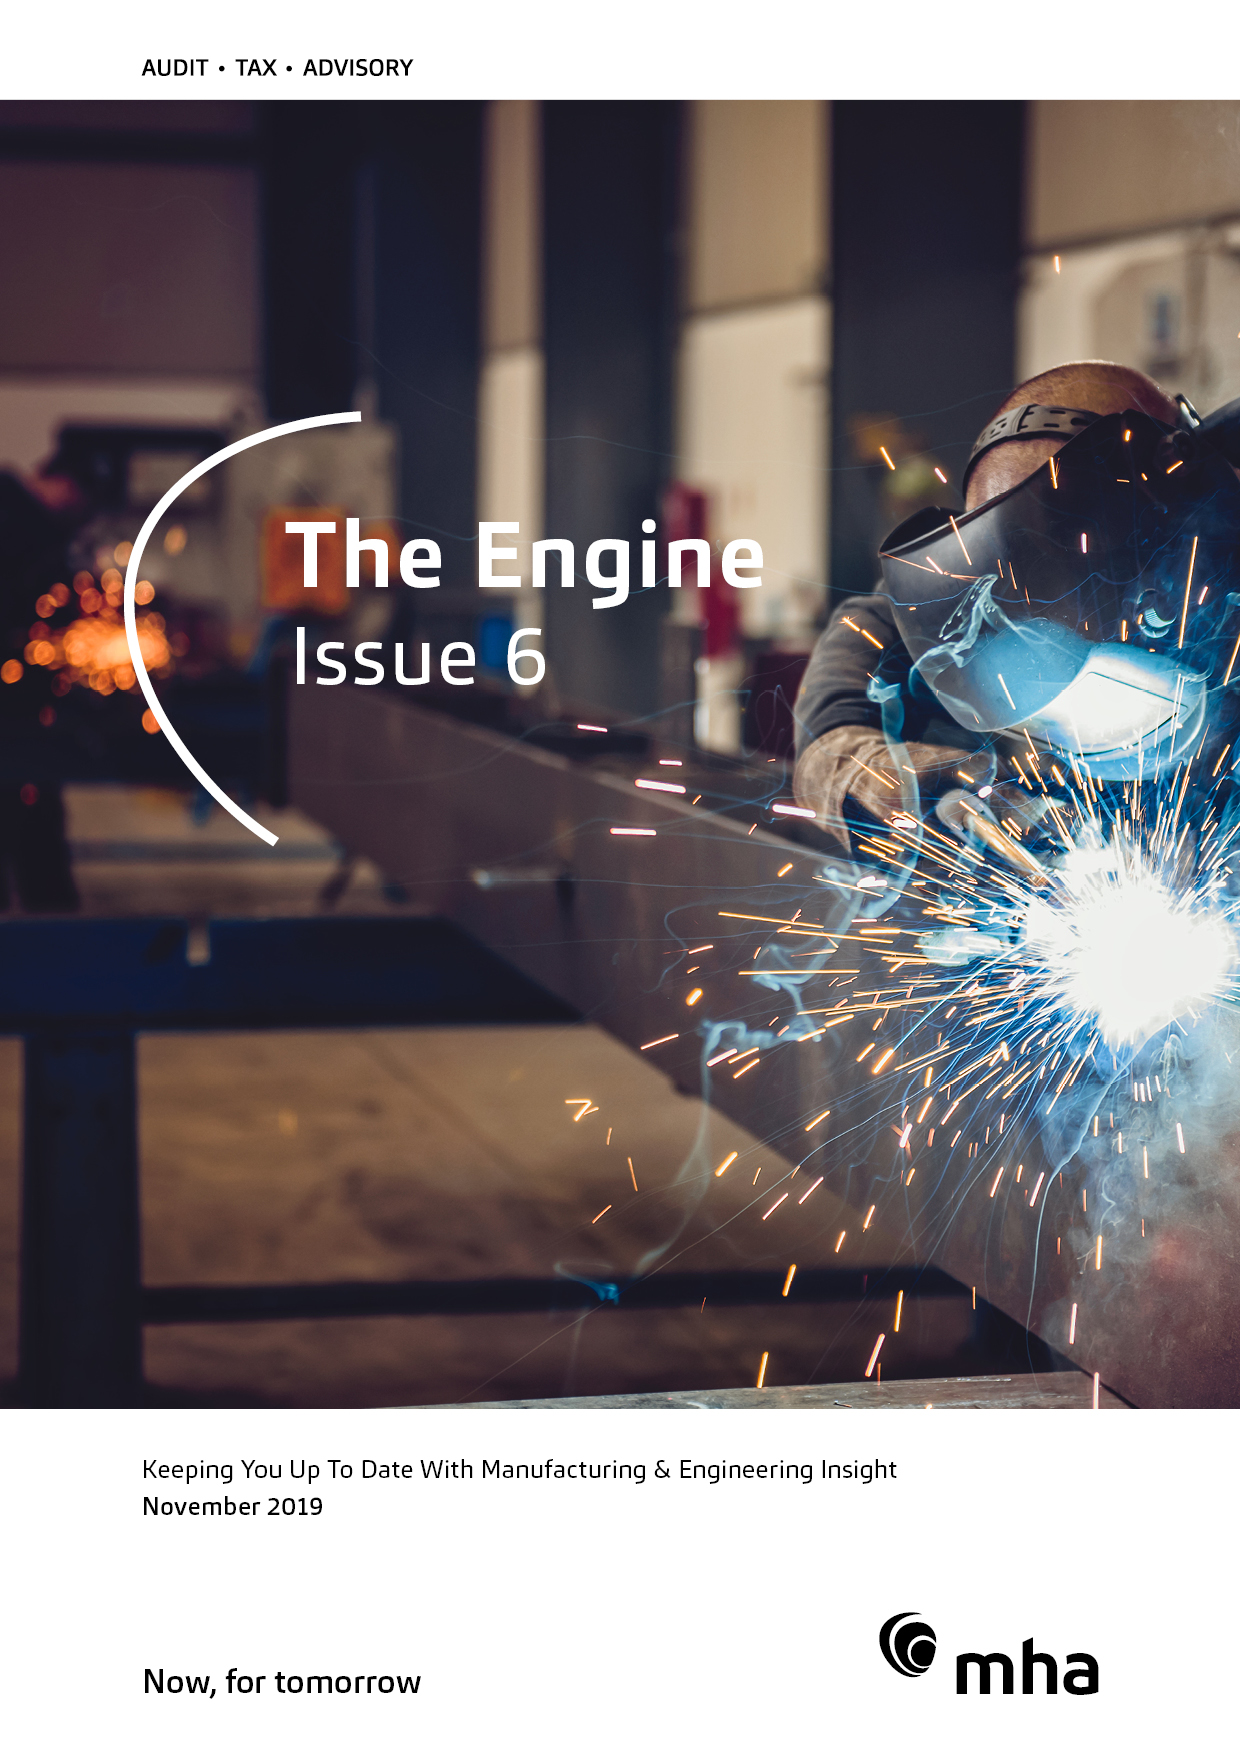 The Engine Issue 6